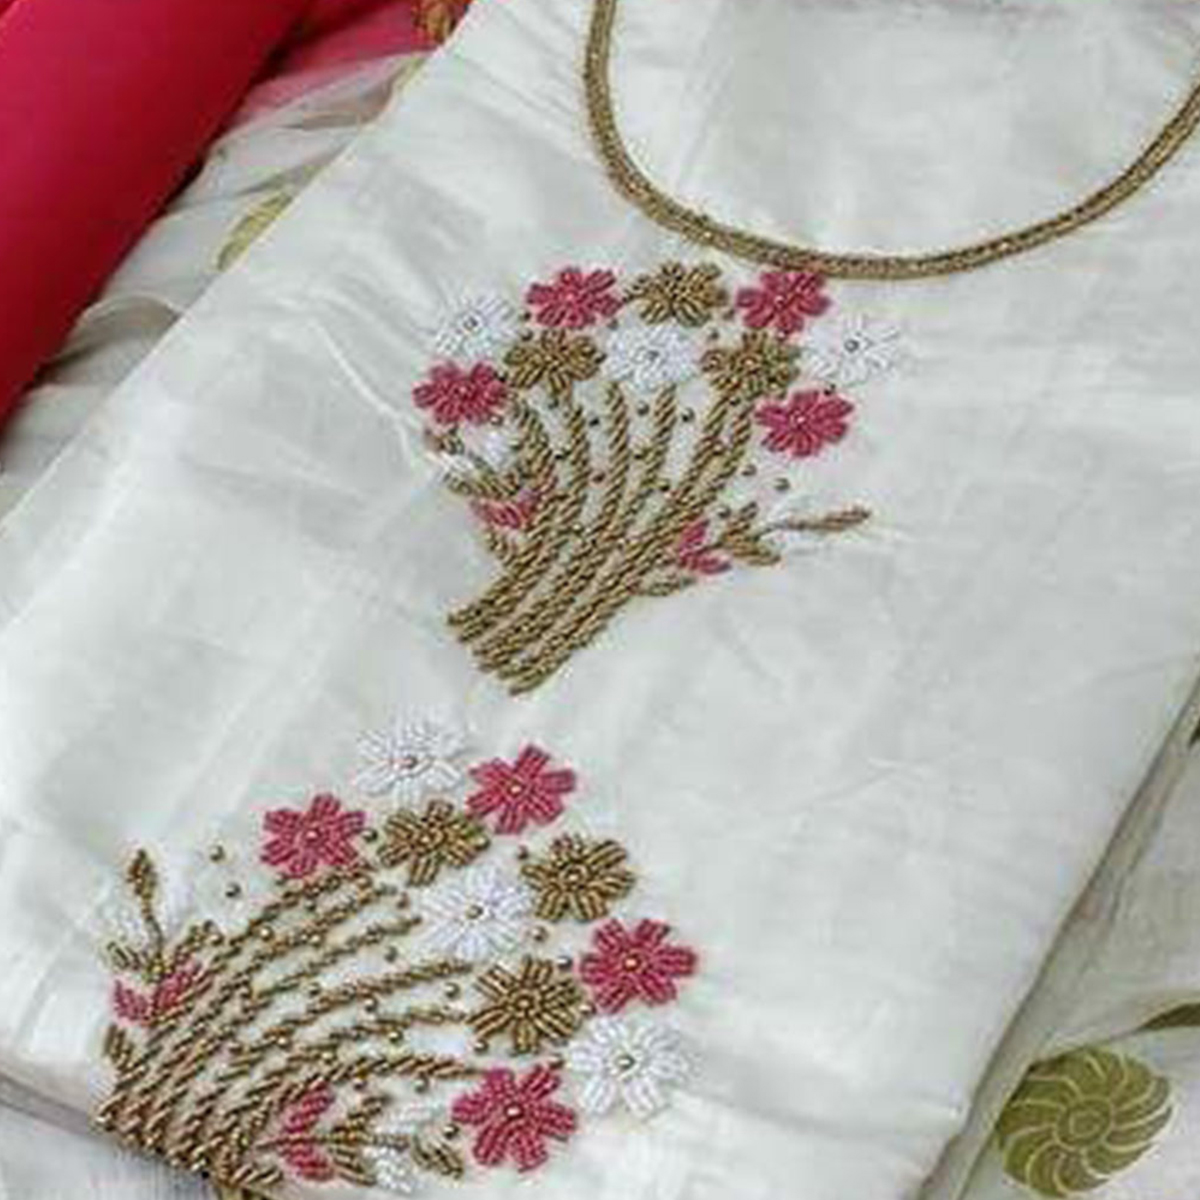 Desiring White-Pink Colored Partywear Embroidered Modal Dress Material